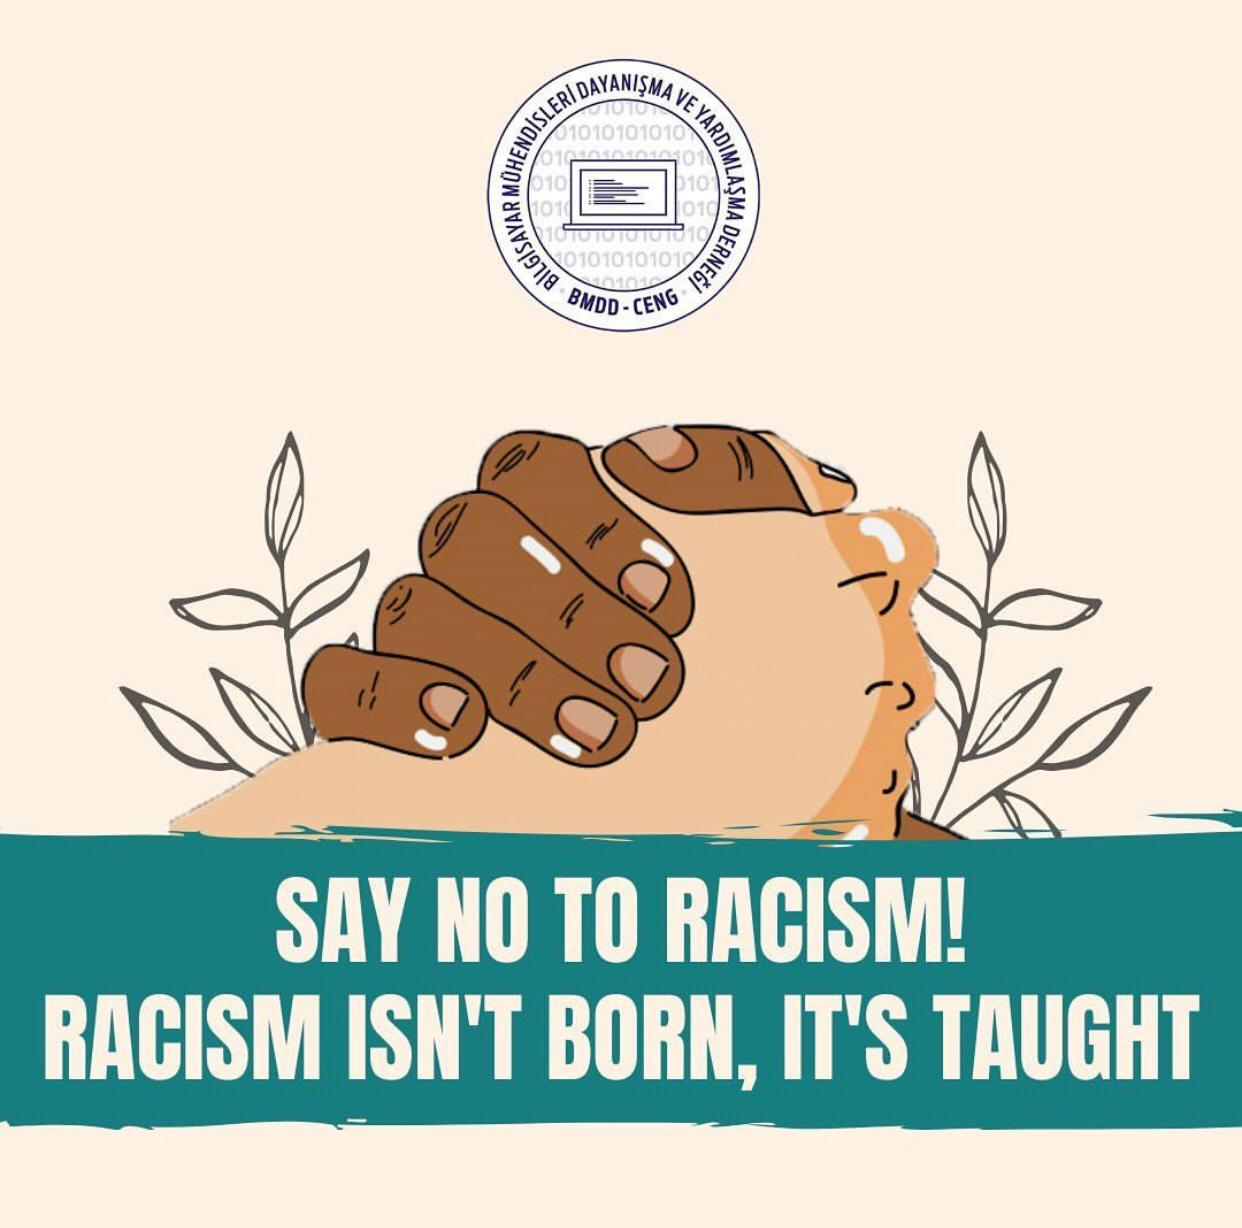 Say No to Racism!